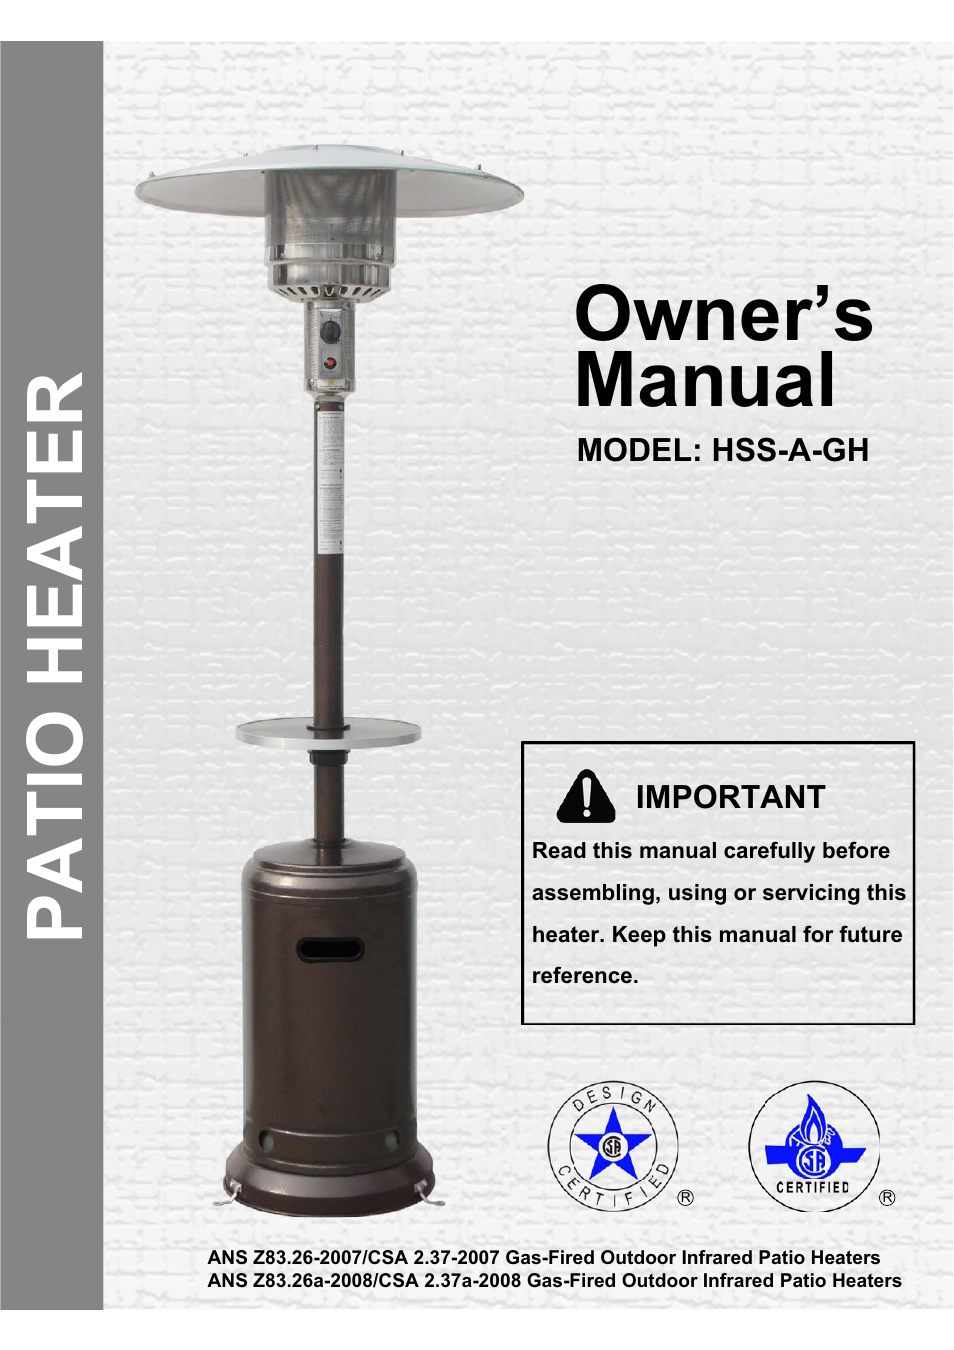 garden sun heater hss a gh standard lift up user manual 14 pages rh manualsdir com Patio Heater Diagram Gas Manual Propane Owners Patio Model Heater Sf87phlp